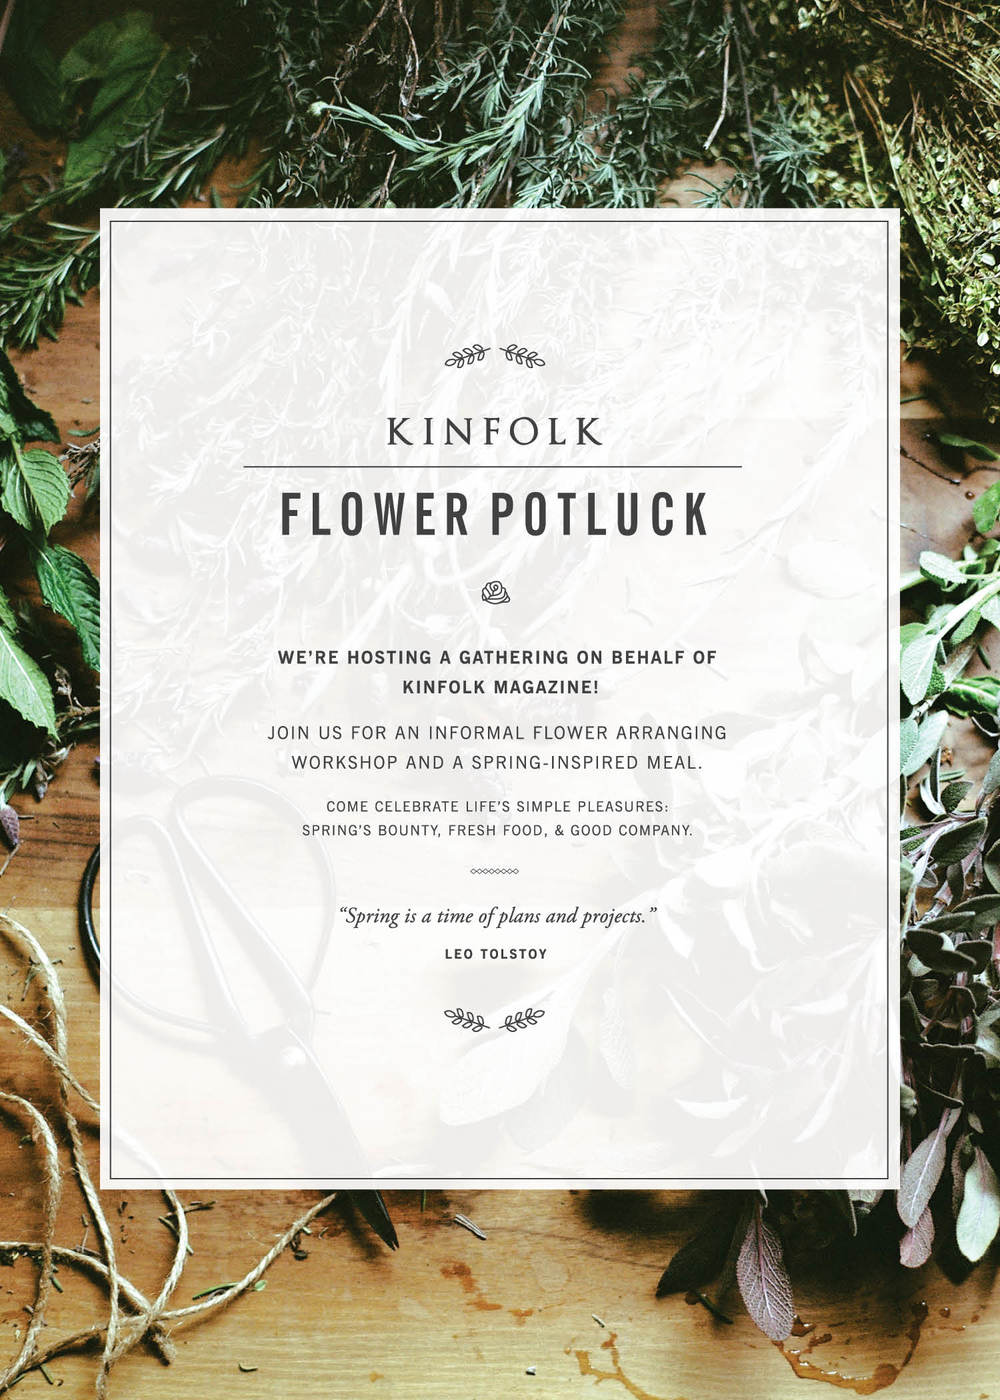 Flower Potluck Announcement.jpg